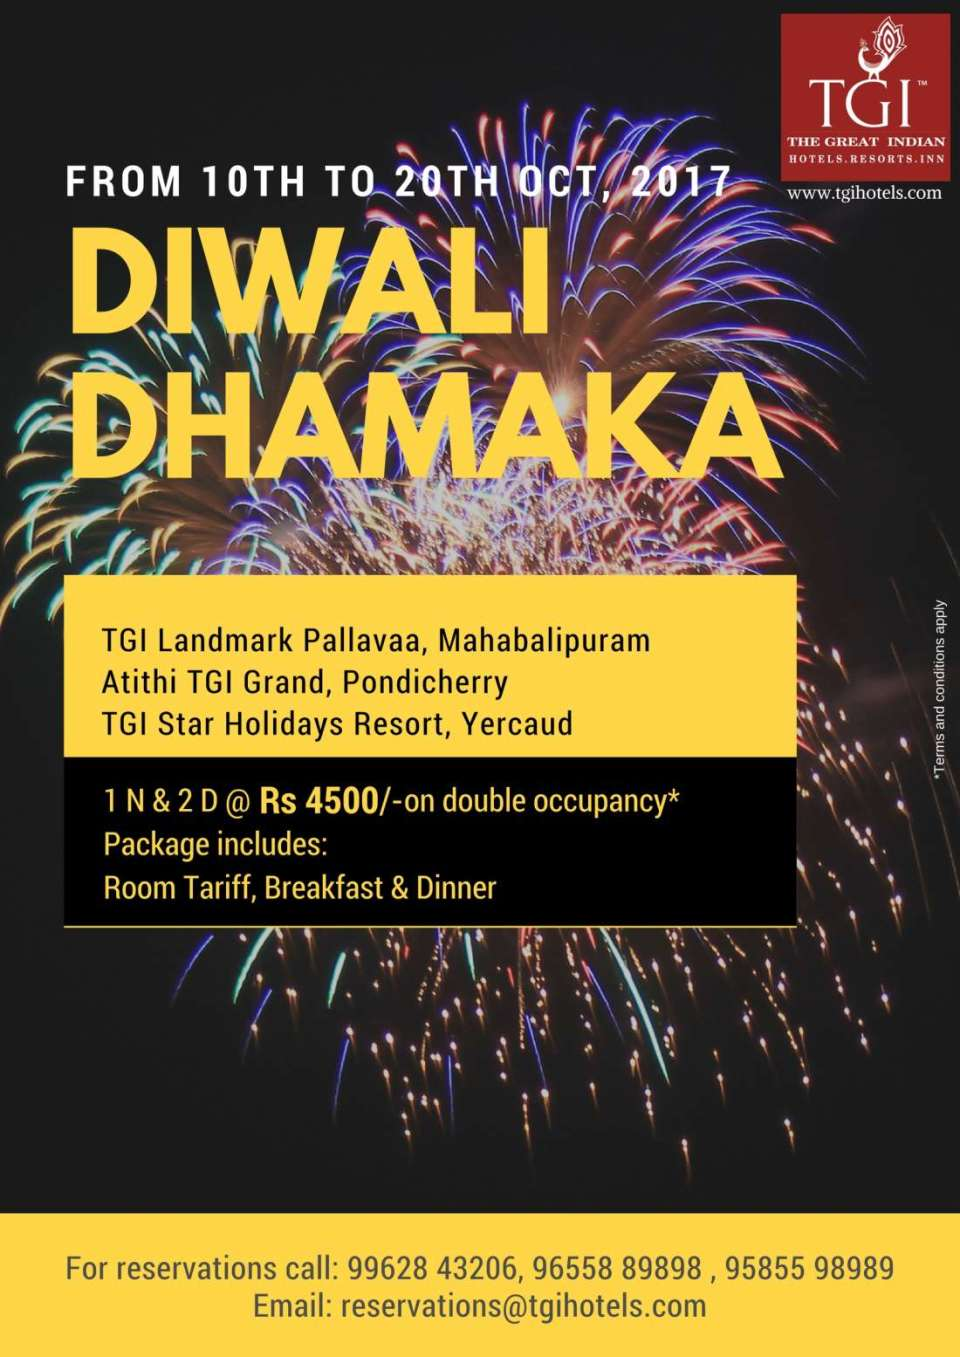 Hotel Atithi, Pondicherry Pondicherry Diwali Dhamak Atithi Agra